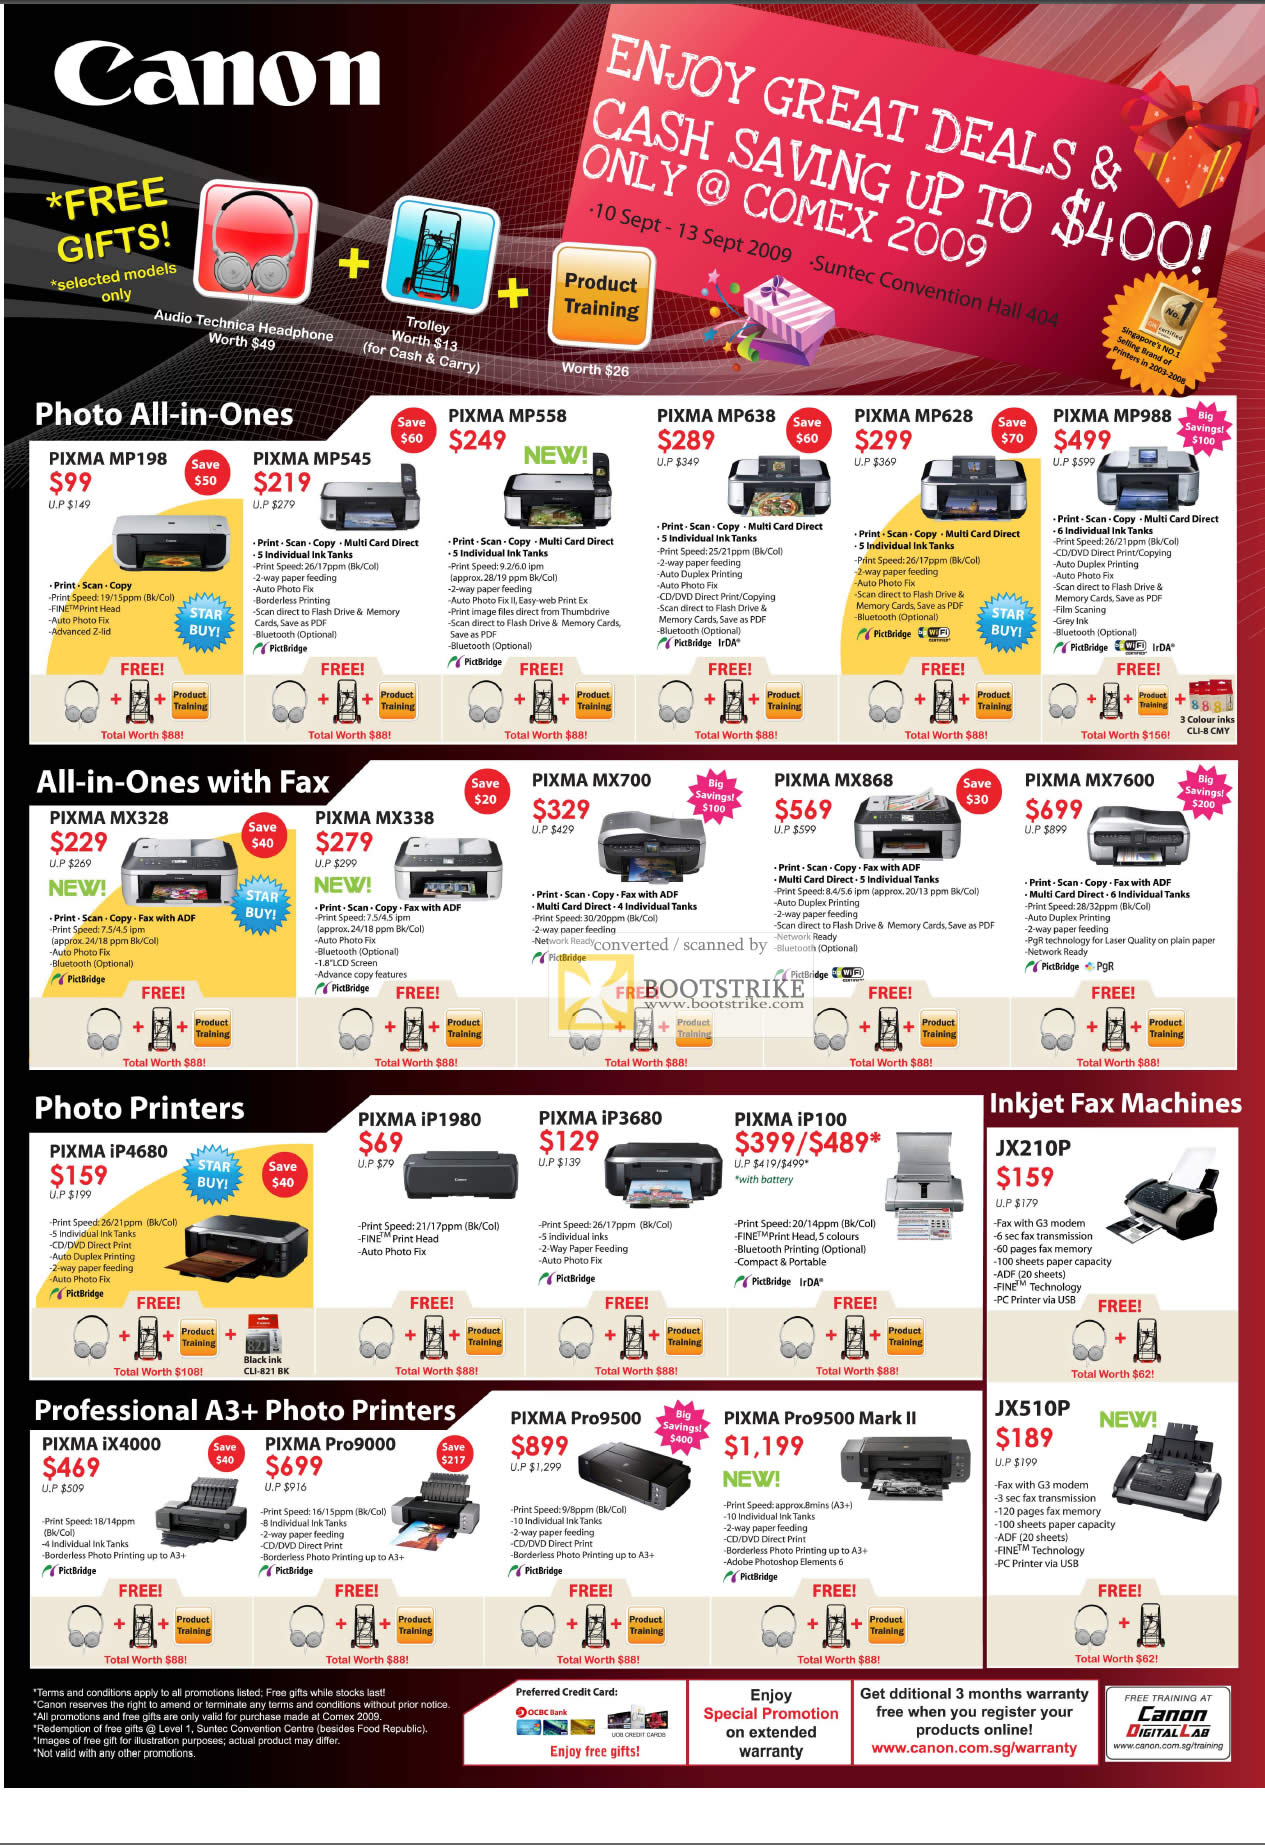 Comex 2009 price list image brochure of Canon Inkjet Printers Photo All-In-One Fax Professional A3